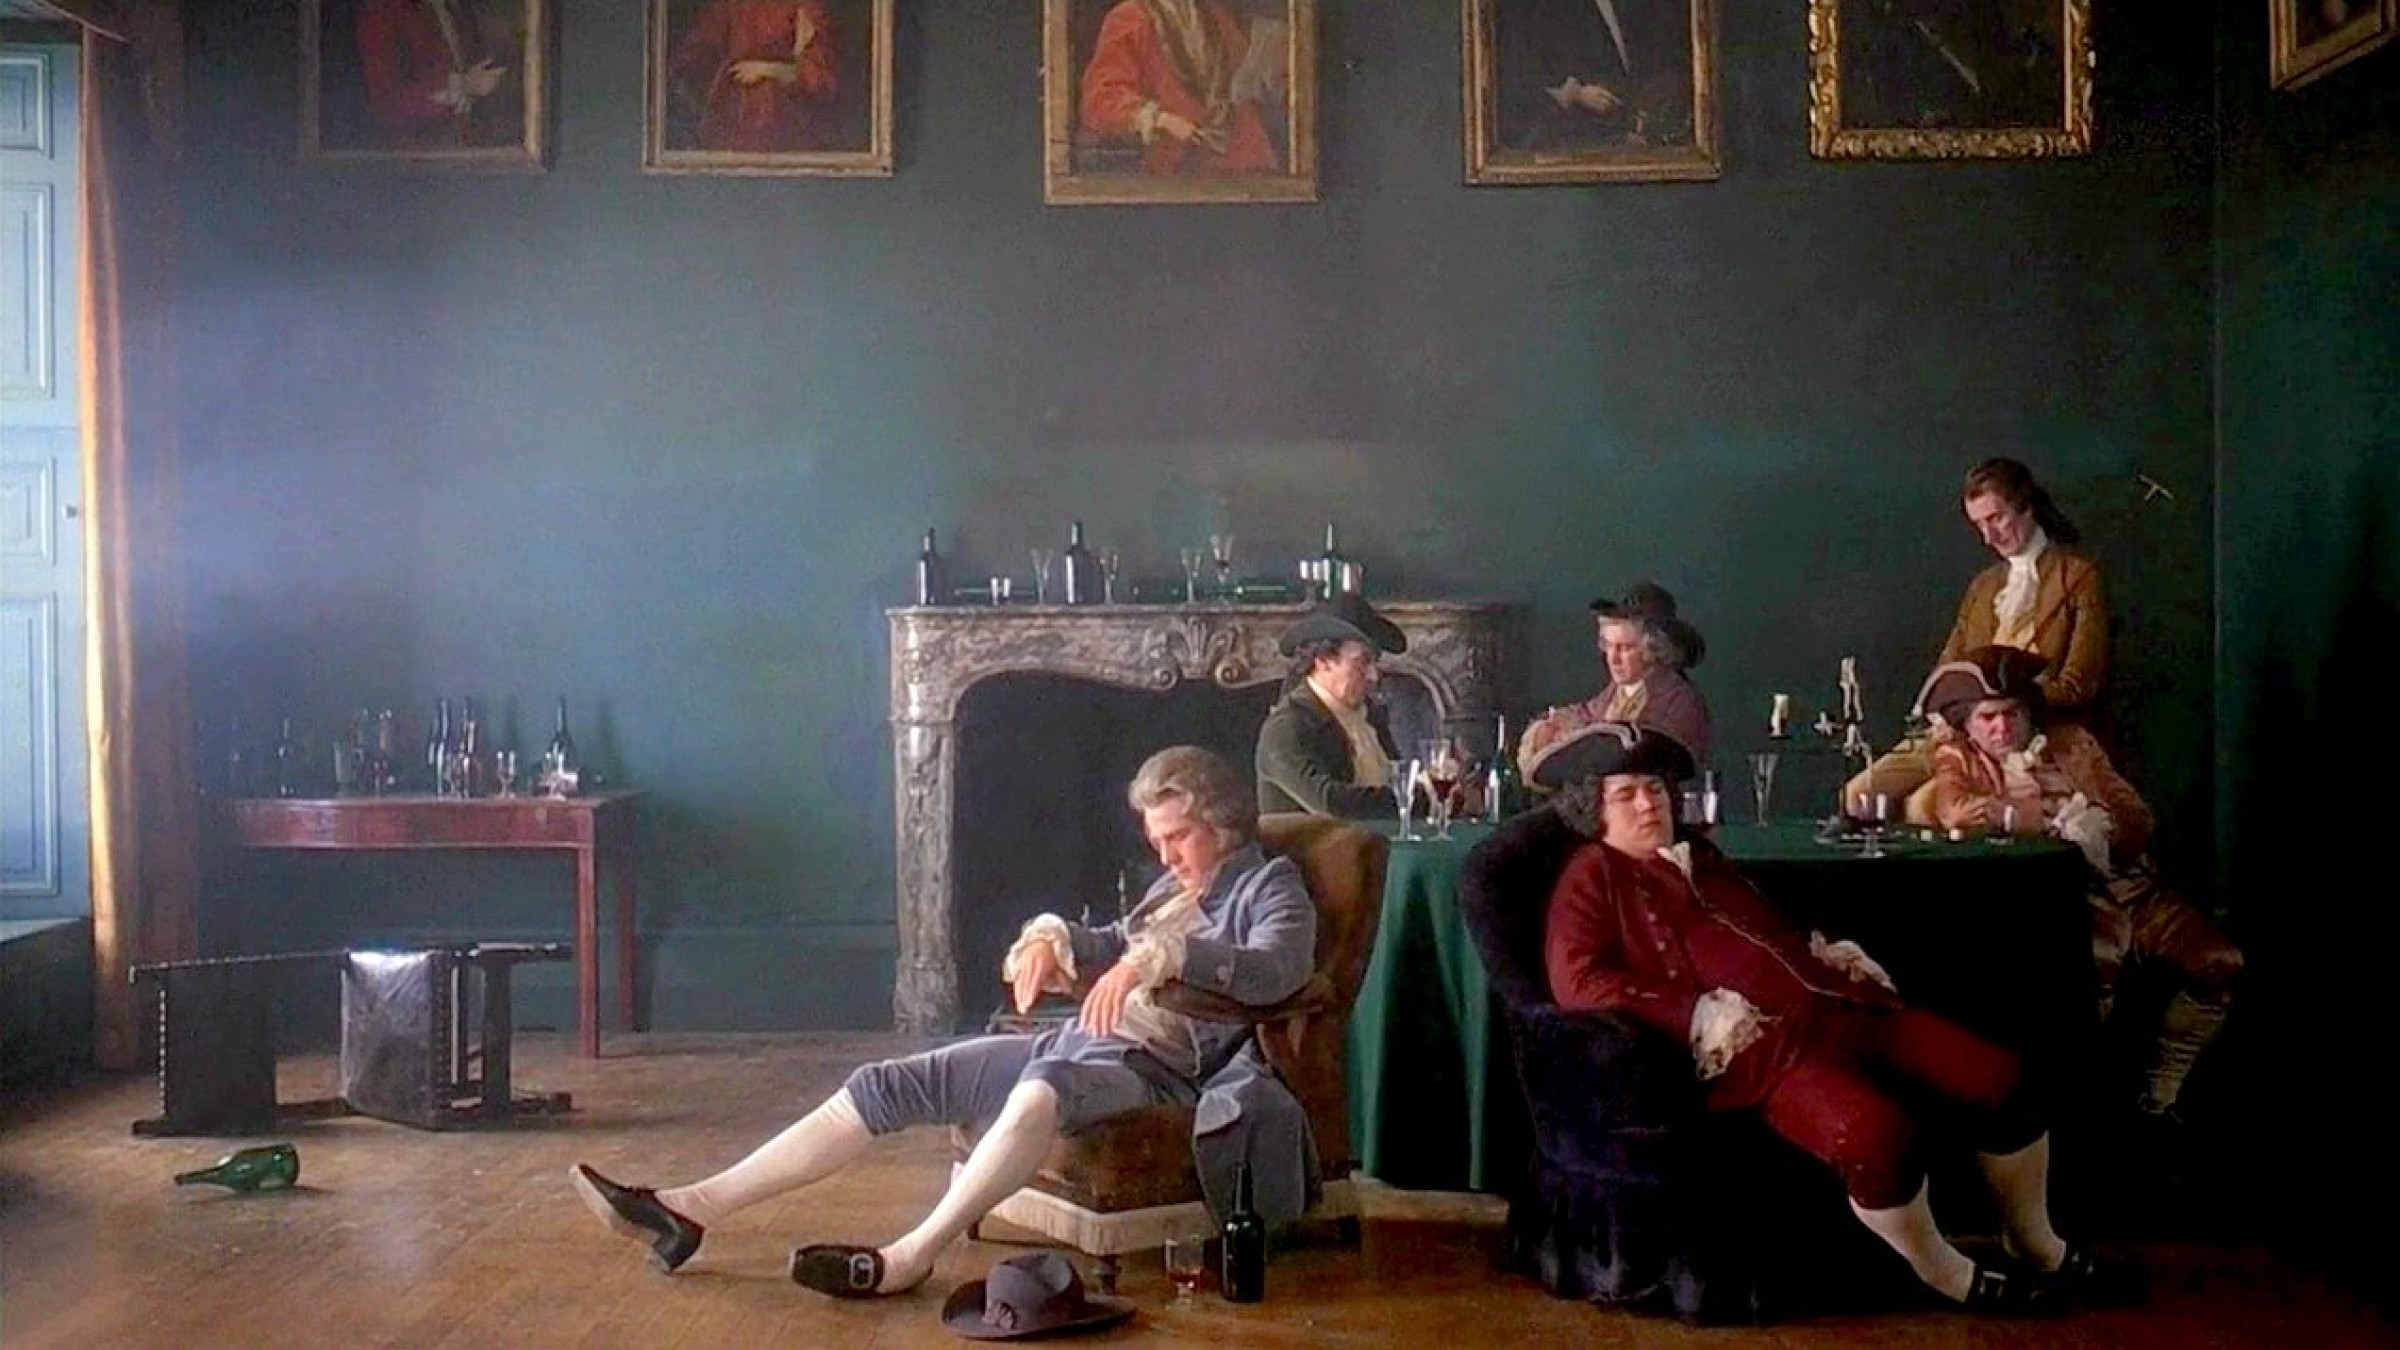 Locals and Crew Tell the Tale of Kubrick's Massive Production of 'Barry  Lyndon' in Ireland